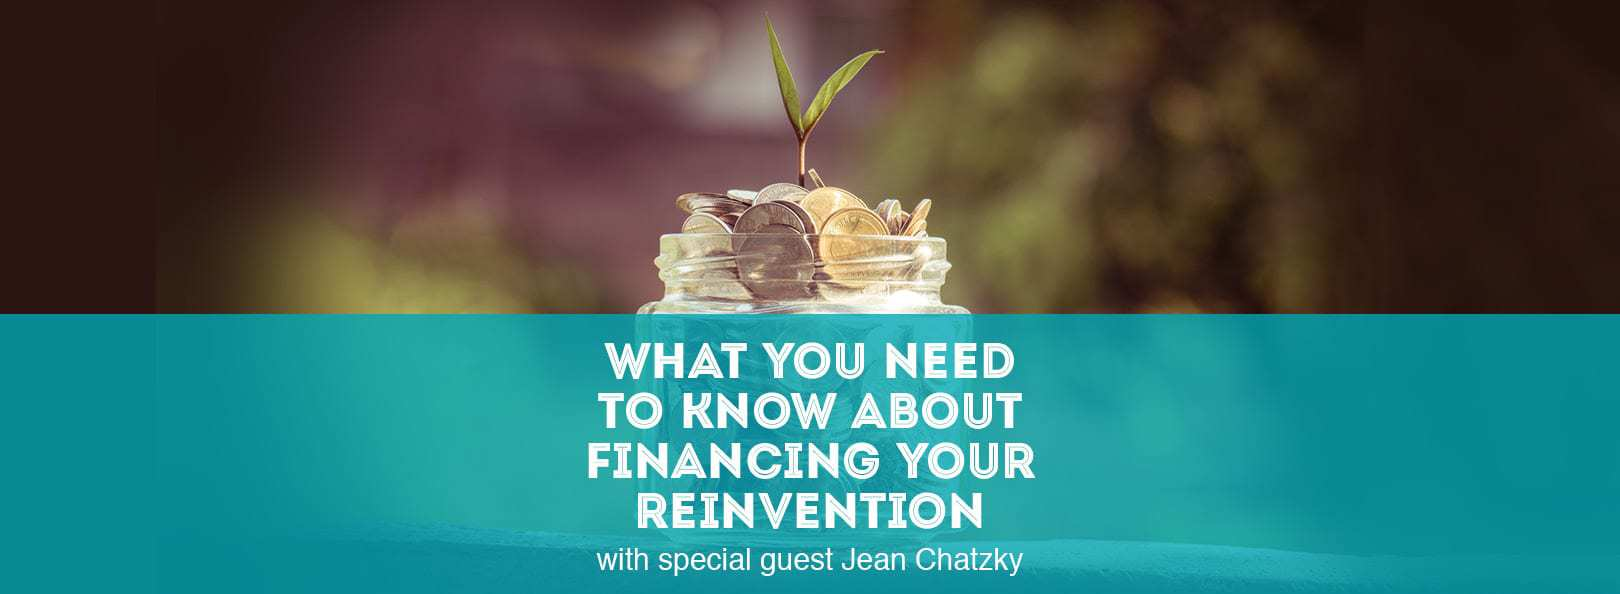 What You Need to Know About Financing Your Reinvention with special guest Jean Chatzky